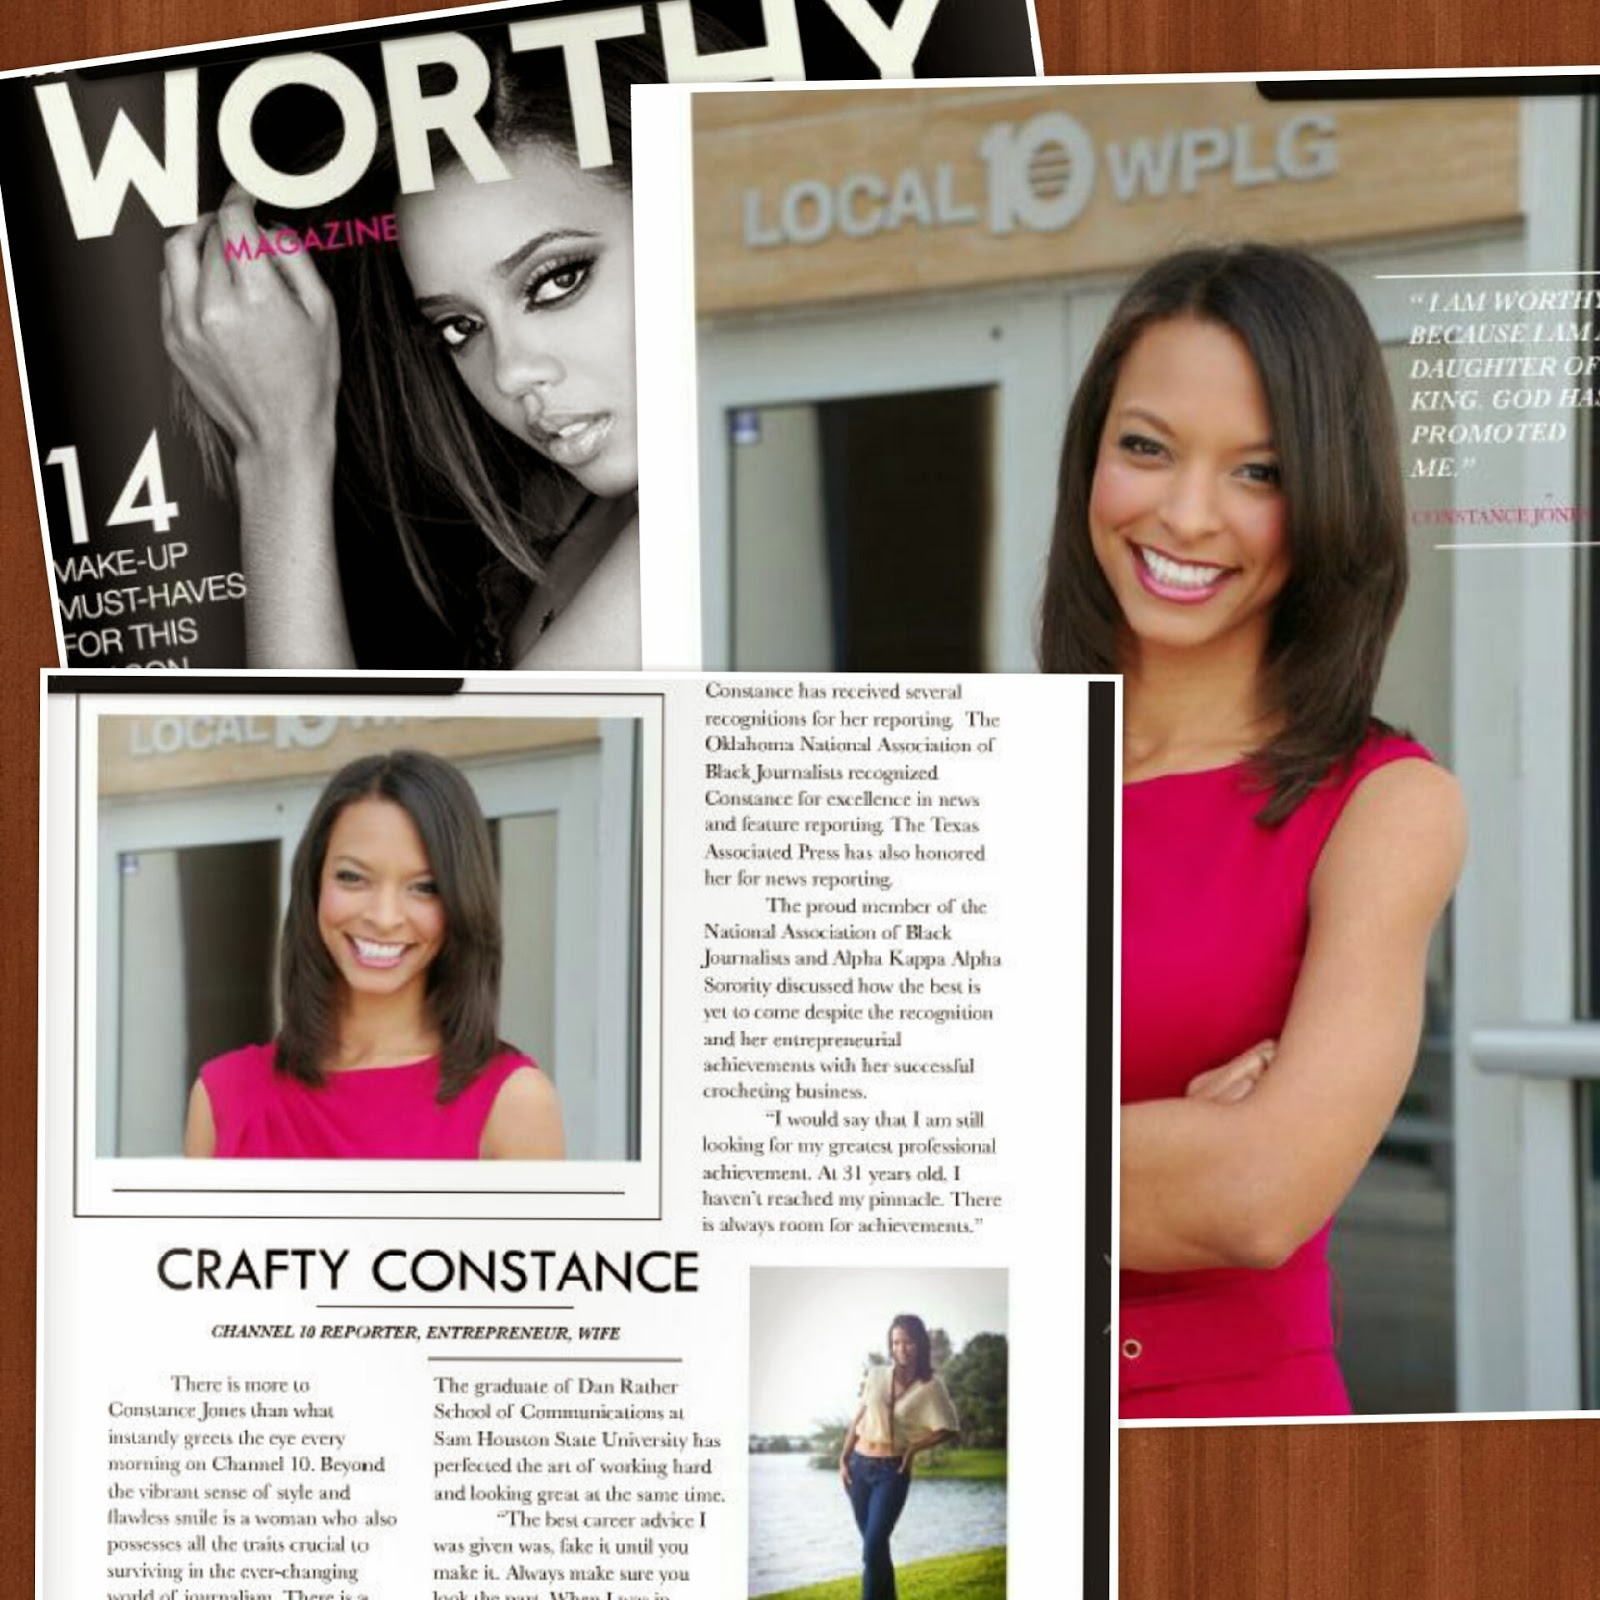 http://issuu.com/worthy/docs/worthy_women_2014_no_9/1?e=3414706%2F6768647 — with Constance Jones.